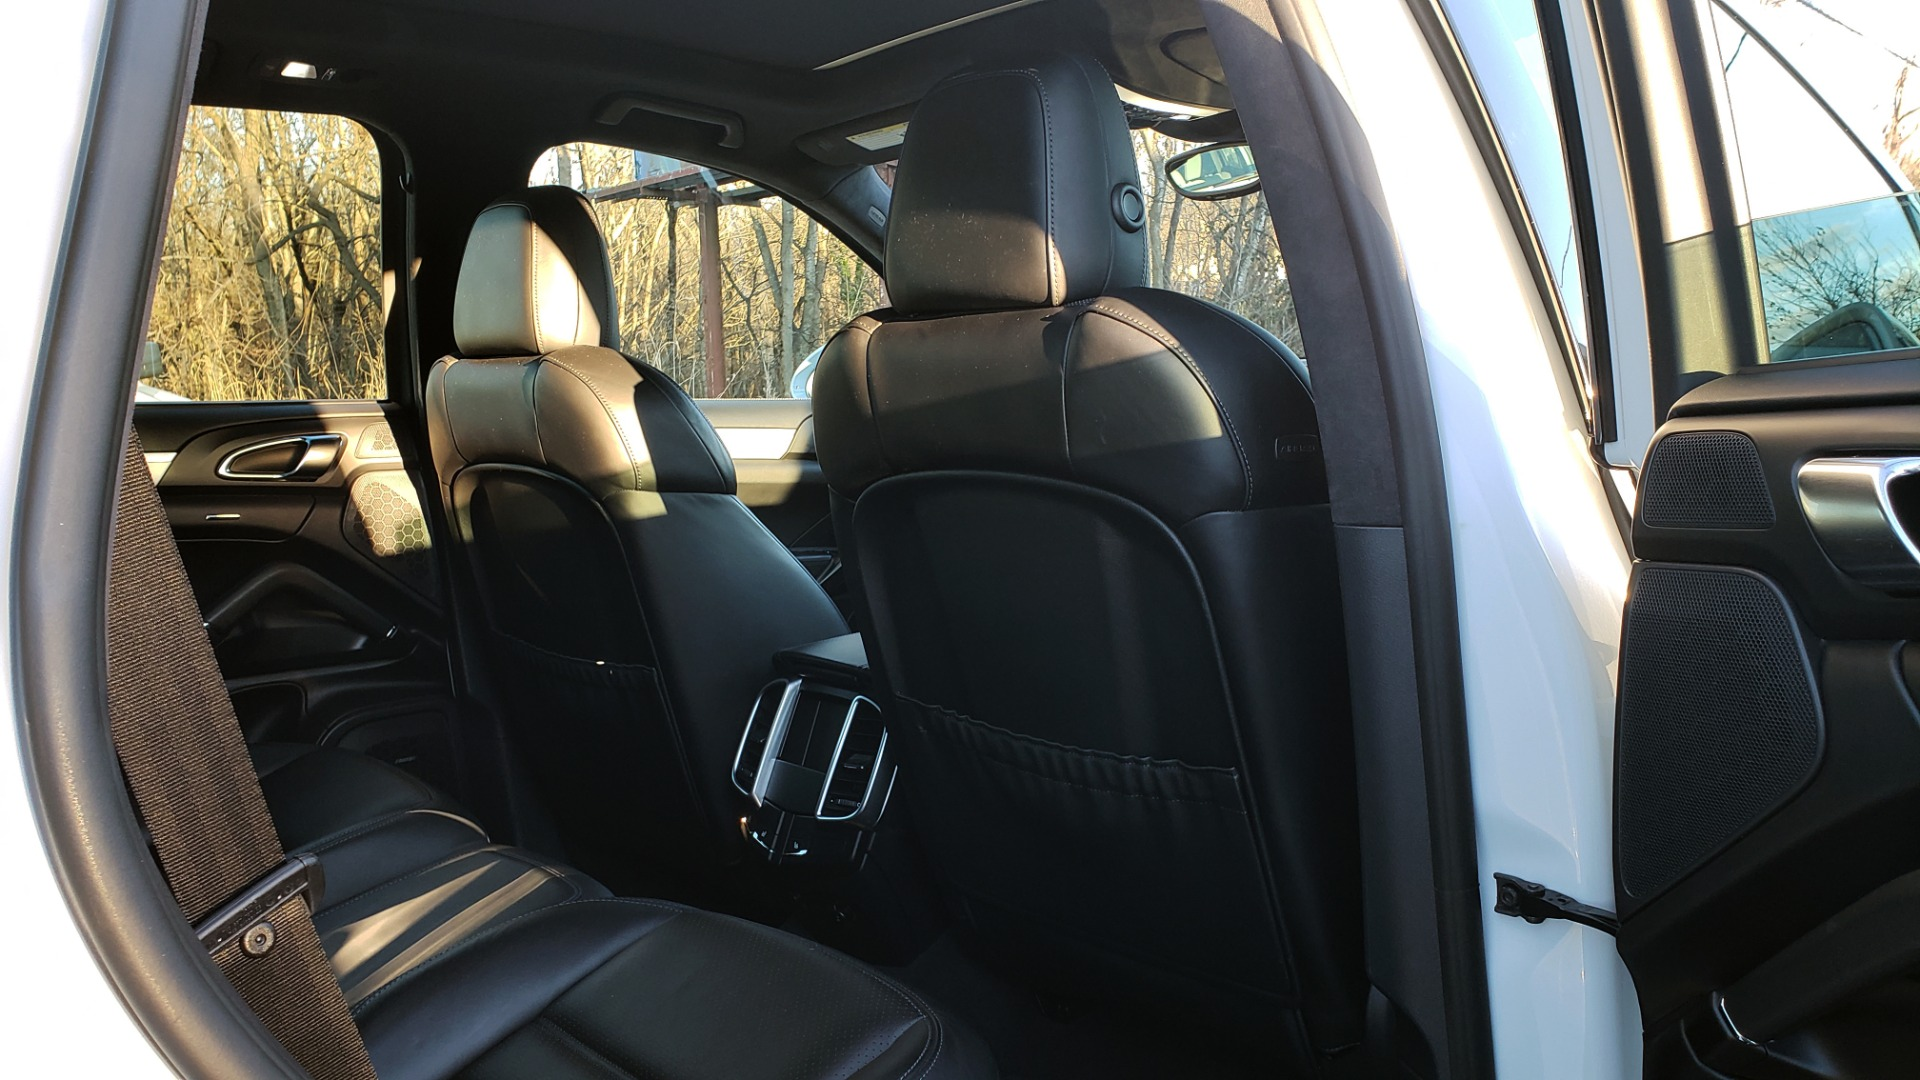 Used 2015 Porsche CAYENNE TURBO V8 / PREMIUM / NAV / SUNROOF / PARK ASSIST / LCA / REARVIEW for sale $47,995 at Formula Imports in Charlotte NC 28227 82